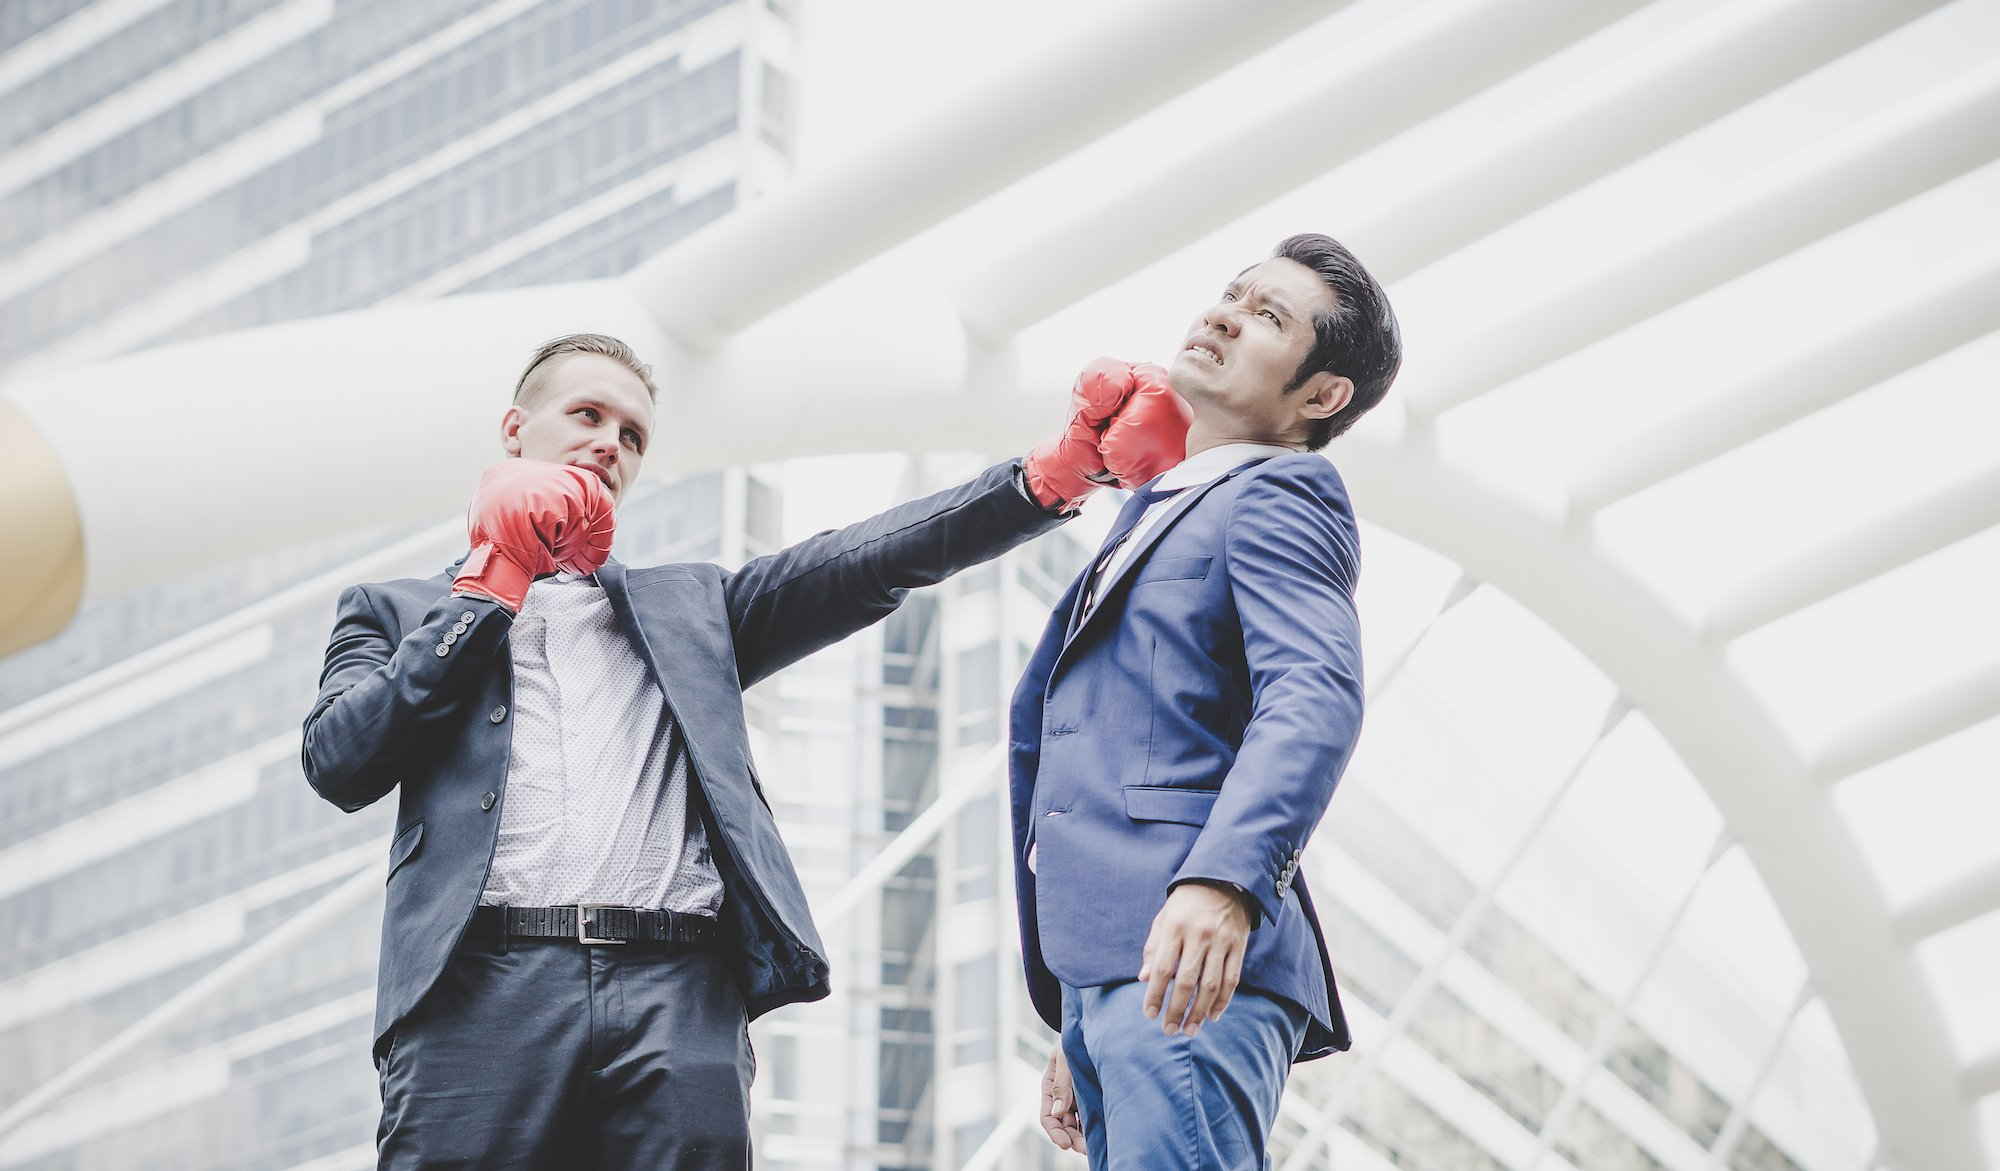 credit-corp-ansell-ann-share-priceBusinessman with red boxing gloves ready to fight his coworker.